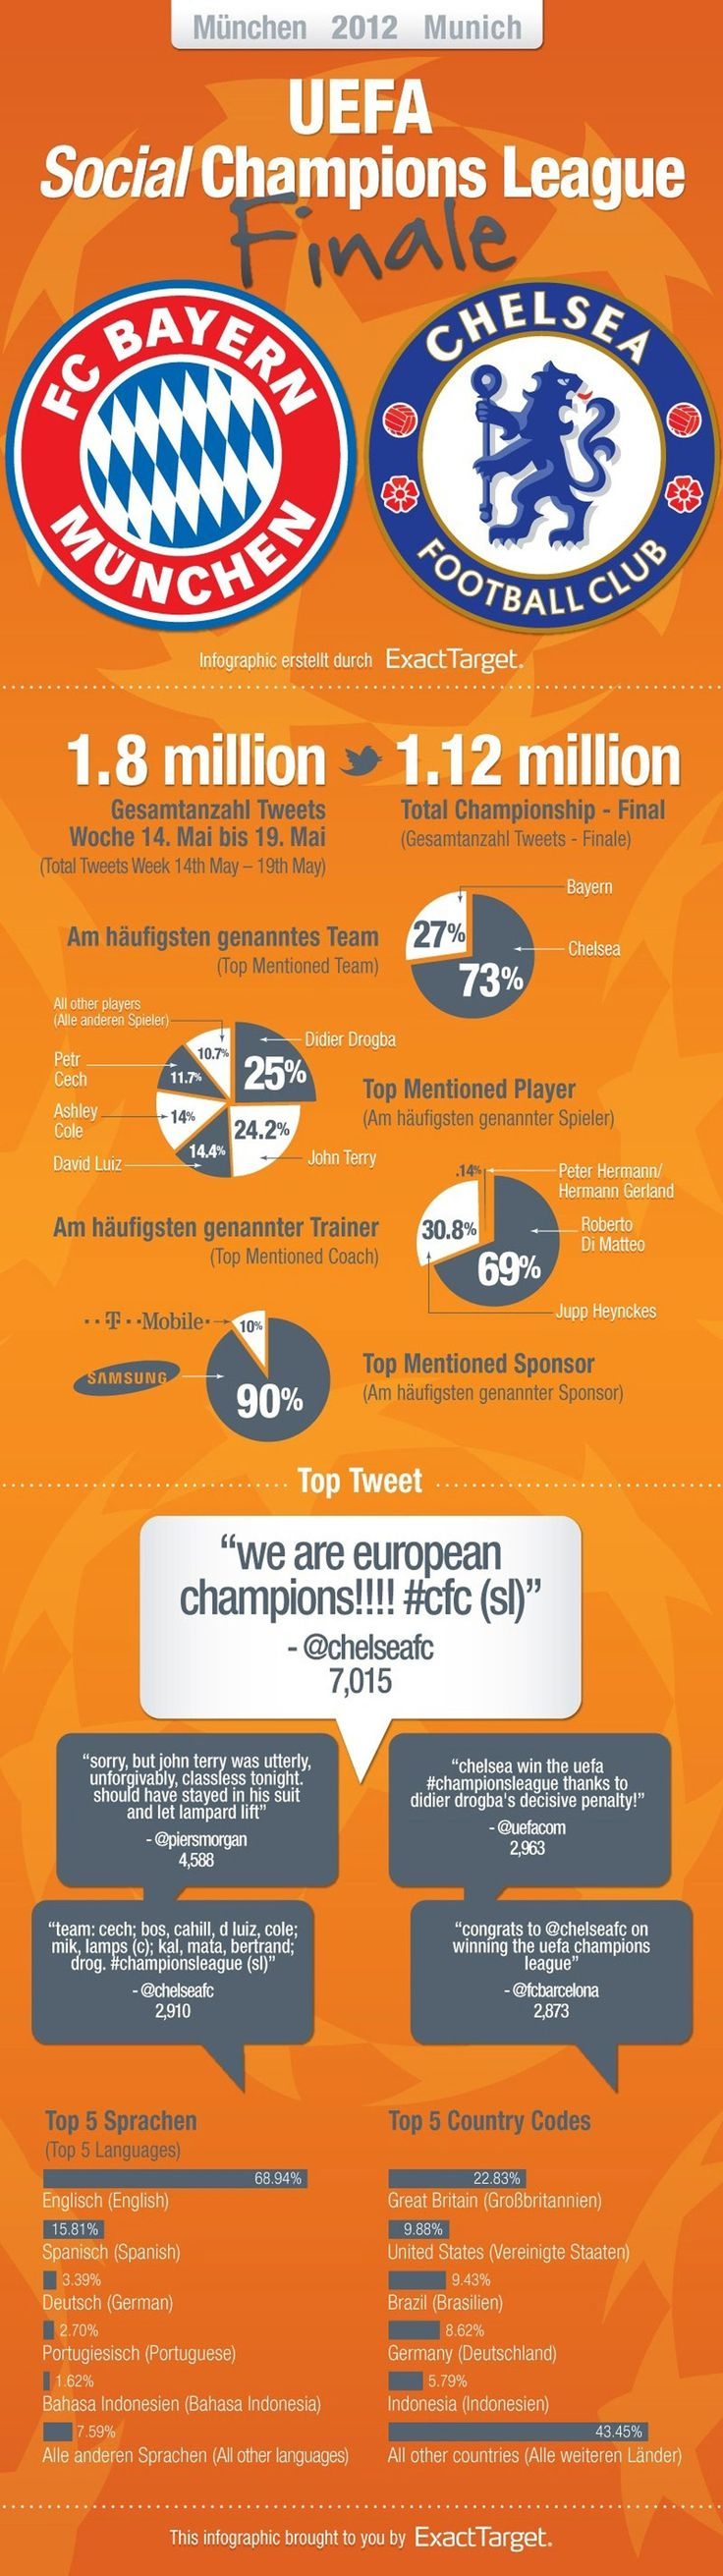 Fascinating Infographic on the tweeting around the Champions League Final chelsea bayern football